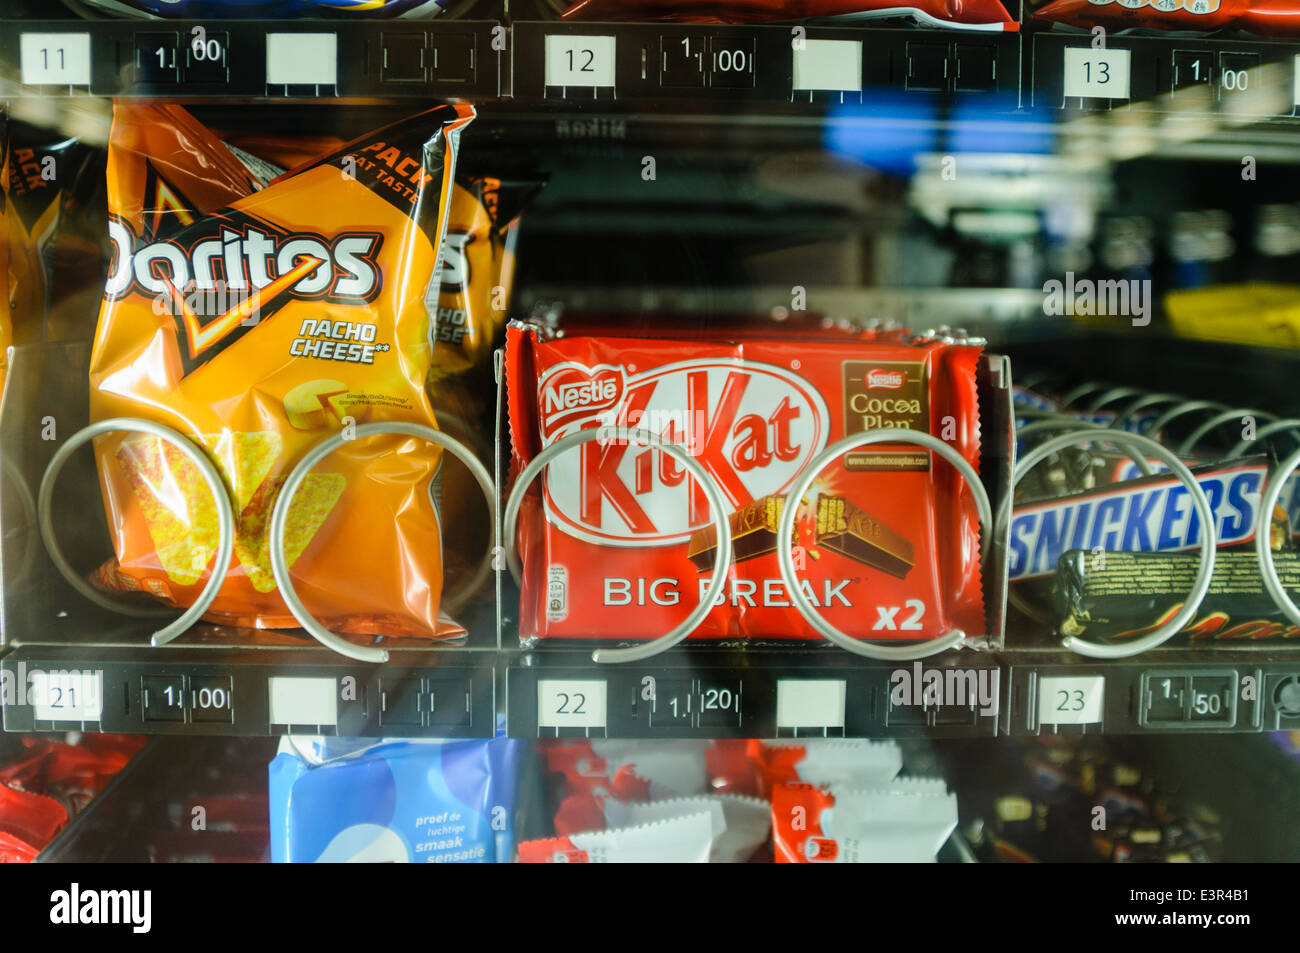 Doritos, Kitkat, Mars and Snickers on sale in a vending machine - Stock Image